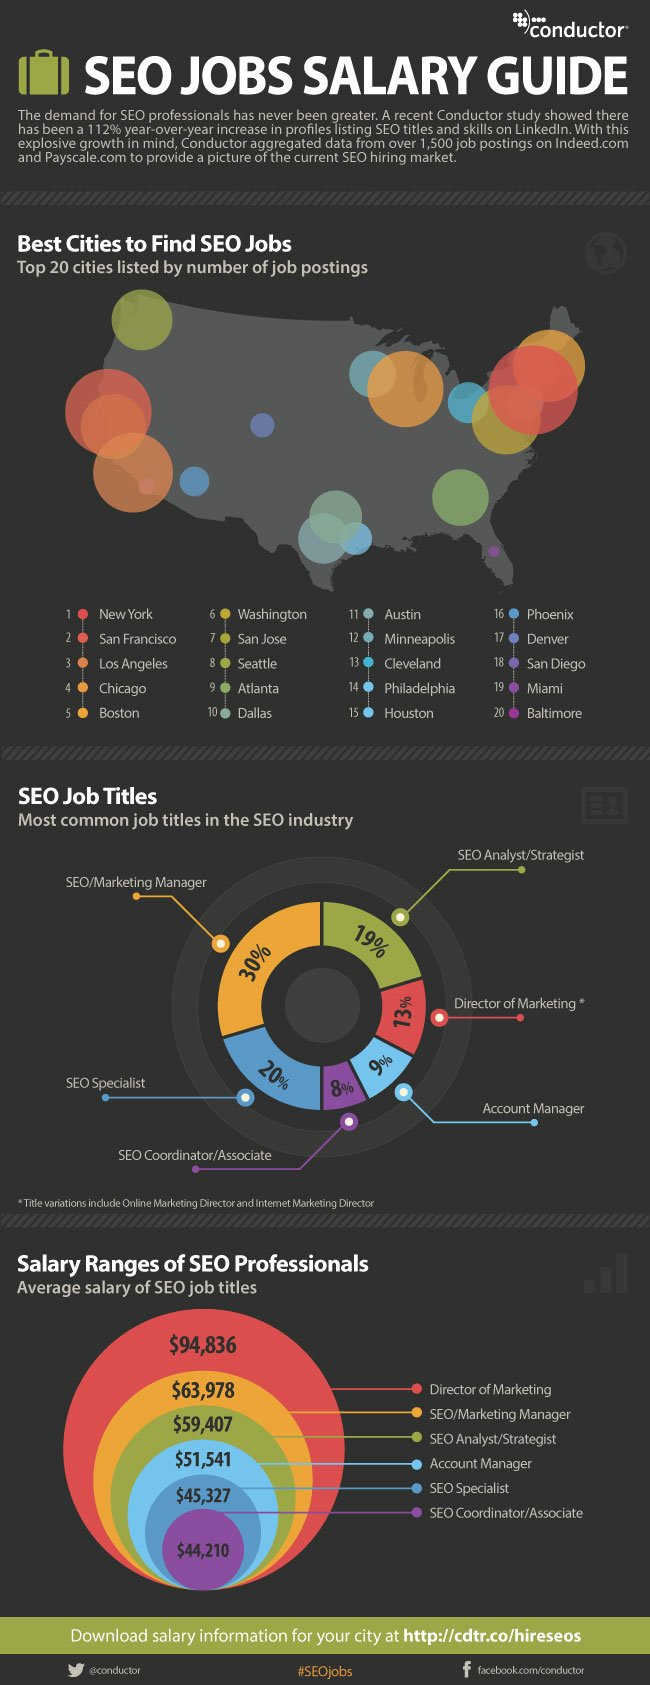 Best Cities To Find SEO Jobs